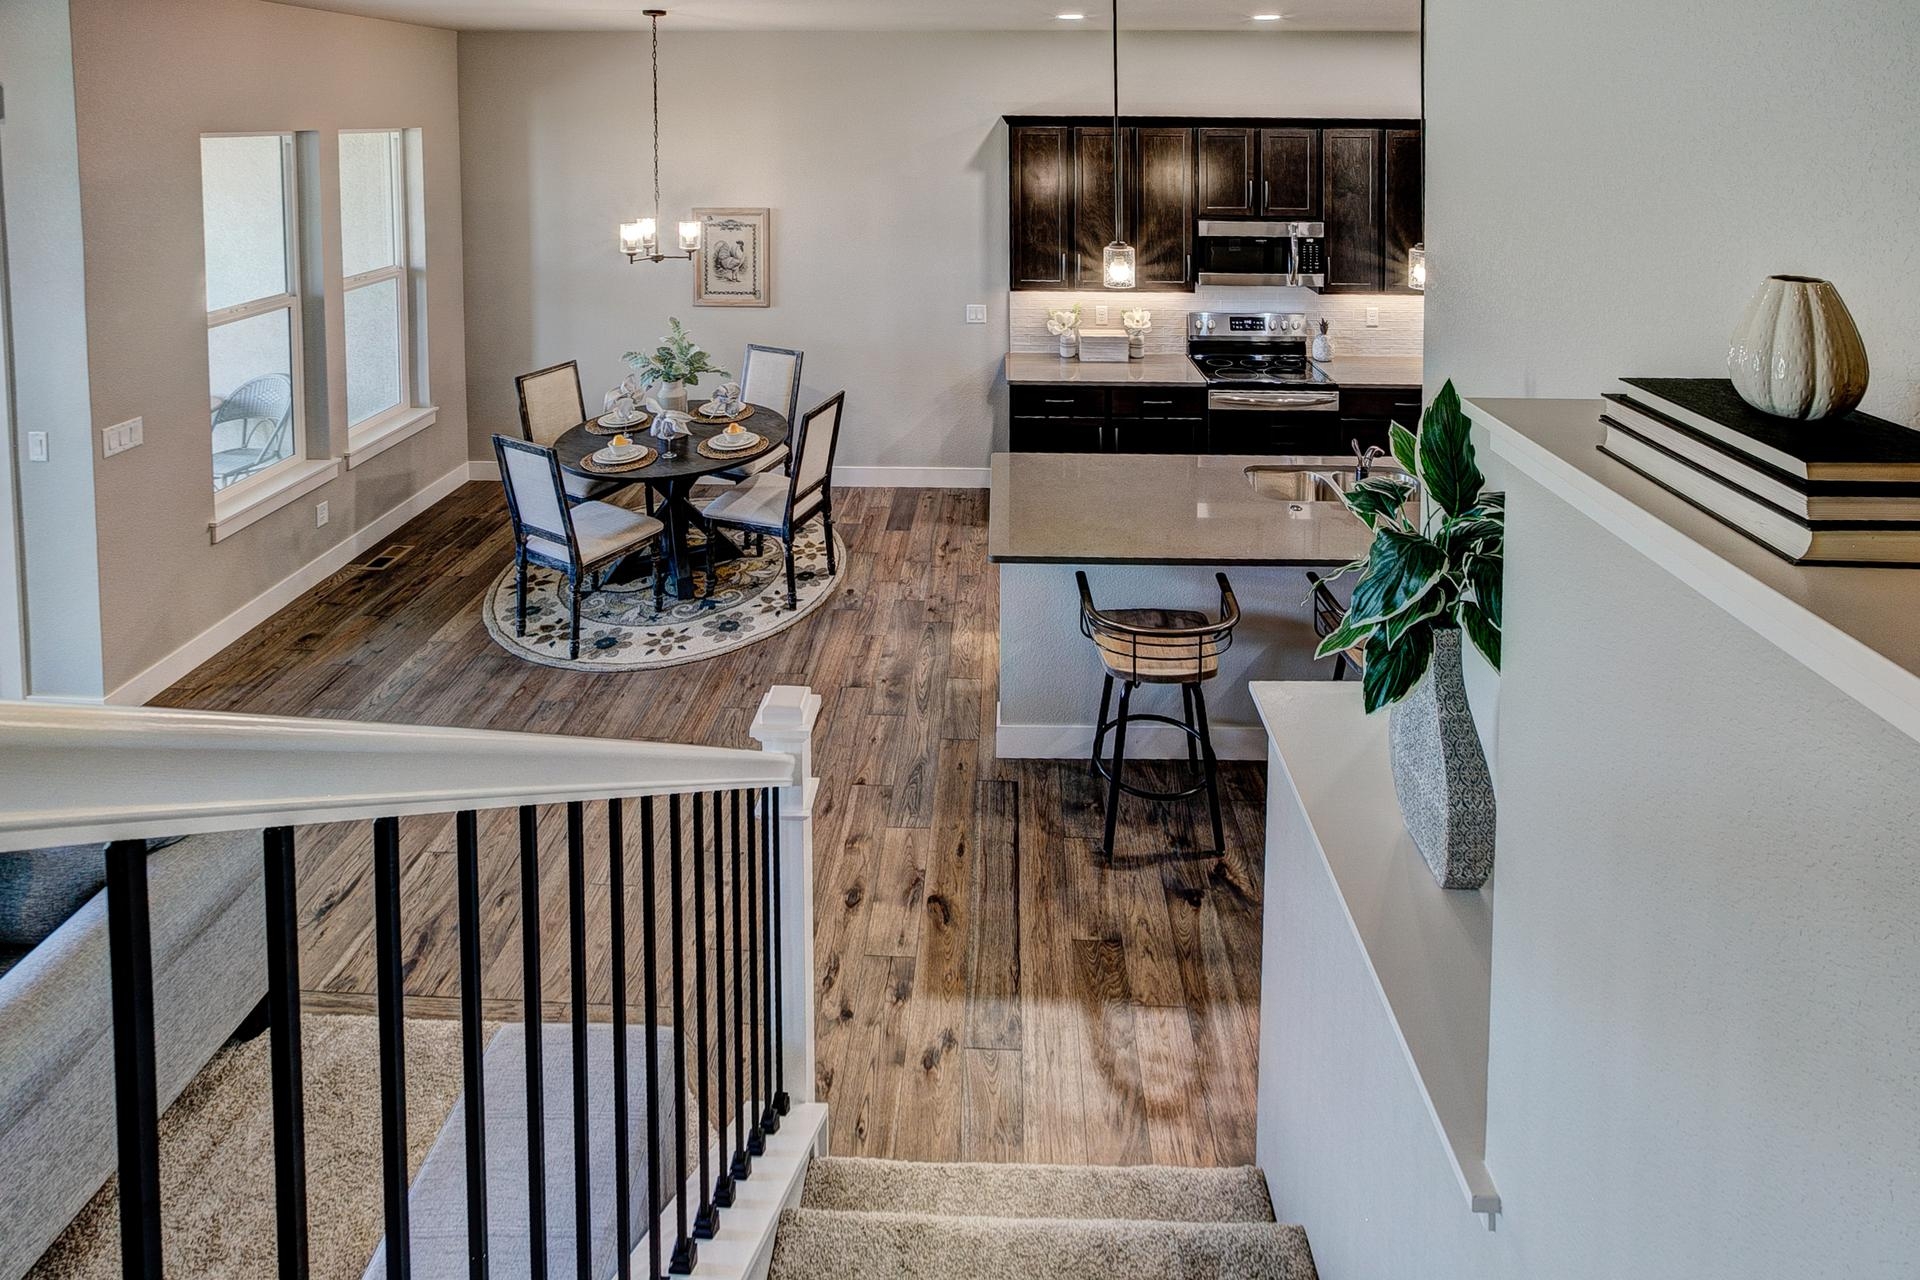 Kitchen/Dining Room - Not Actual Home - Finishes Will Vary